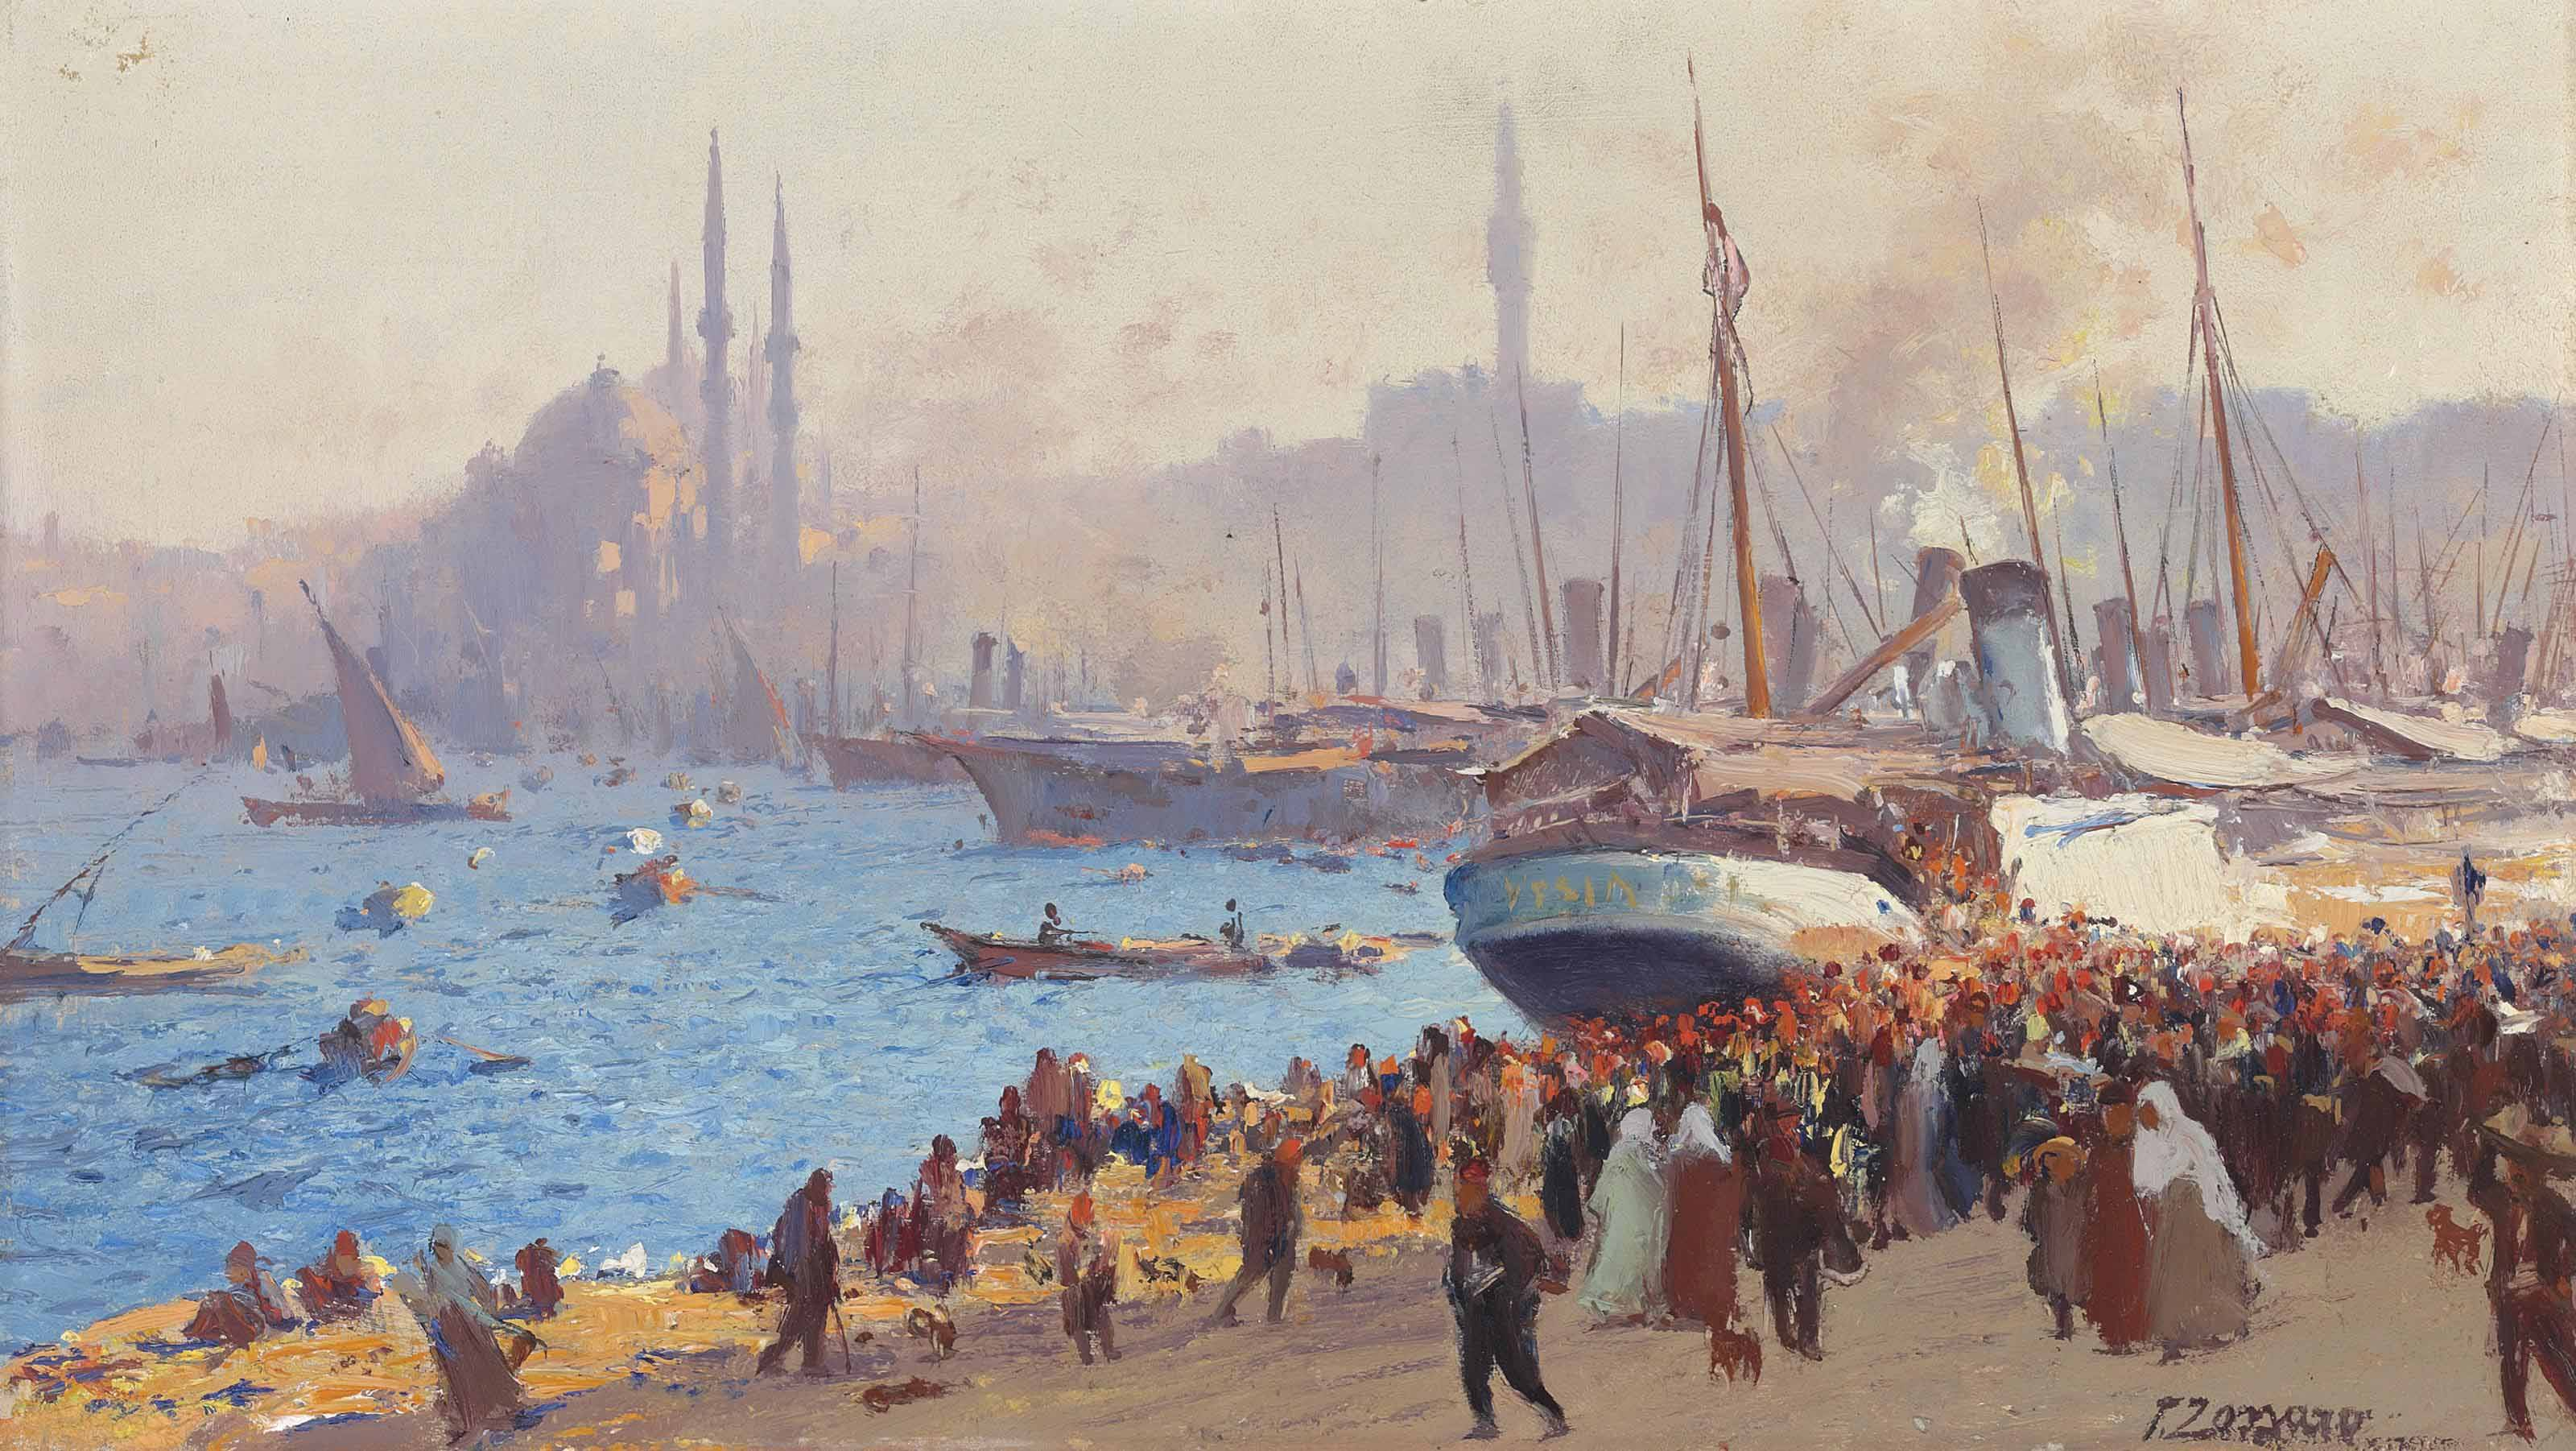 The shore at Galata, Constantinople